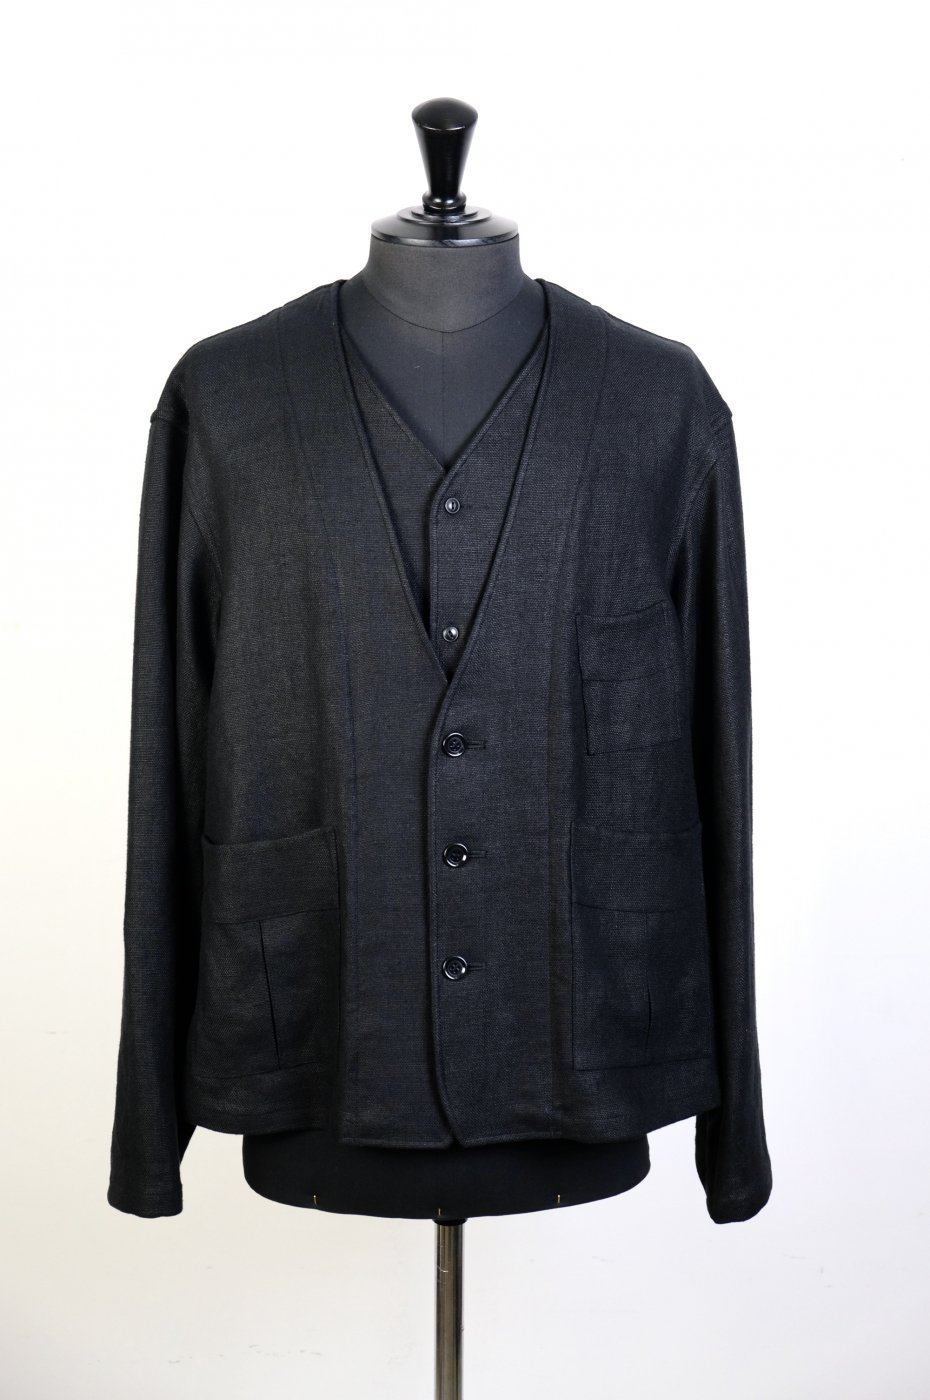 Gorsch the seamster ゴーシュザシームスター -Linen Two Layers Front Jacket-